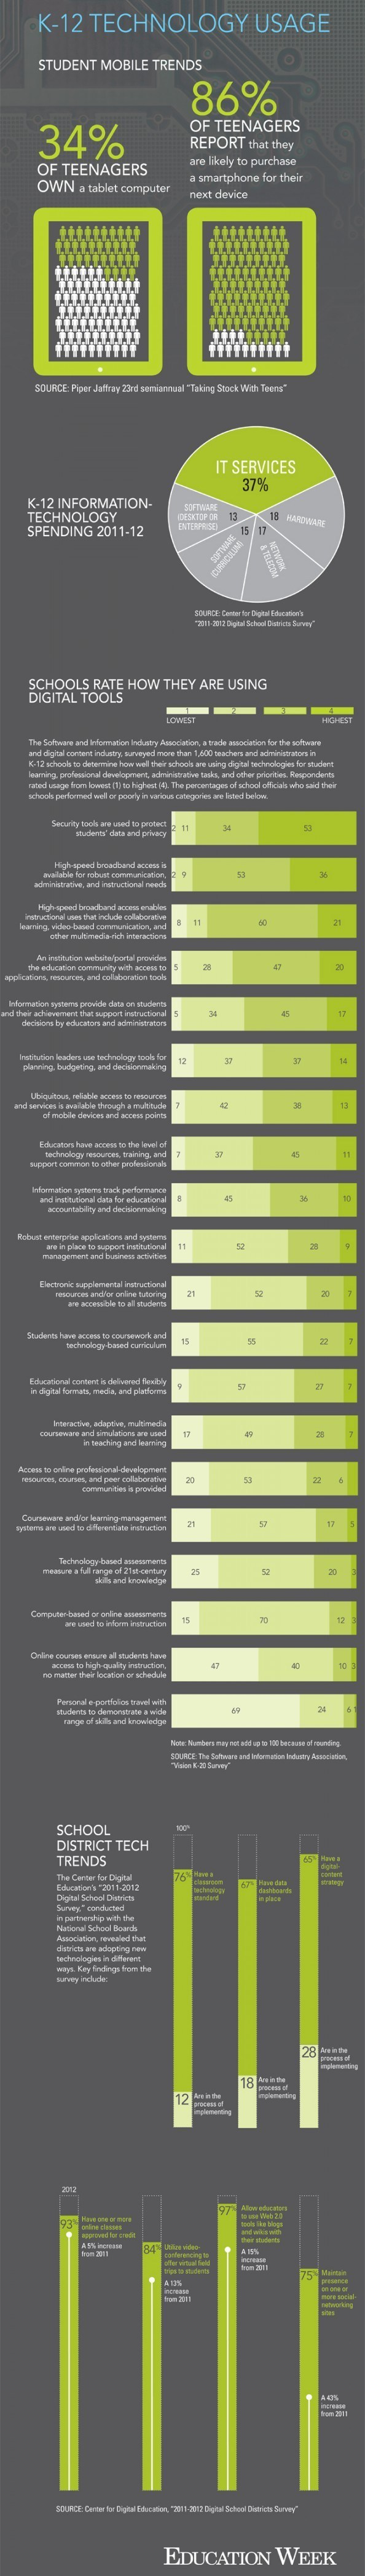 K12 Educational Technology Use Infographic